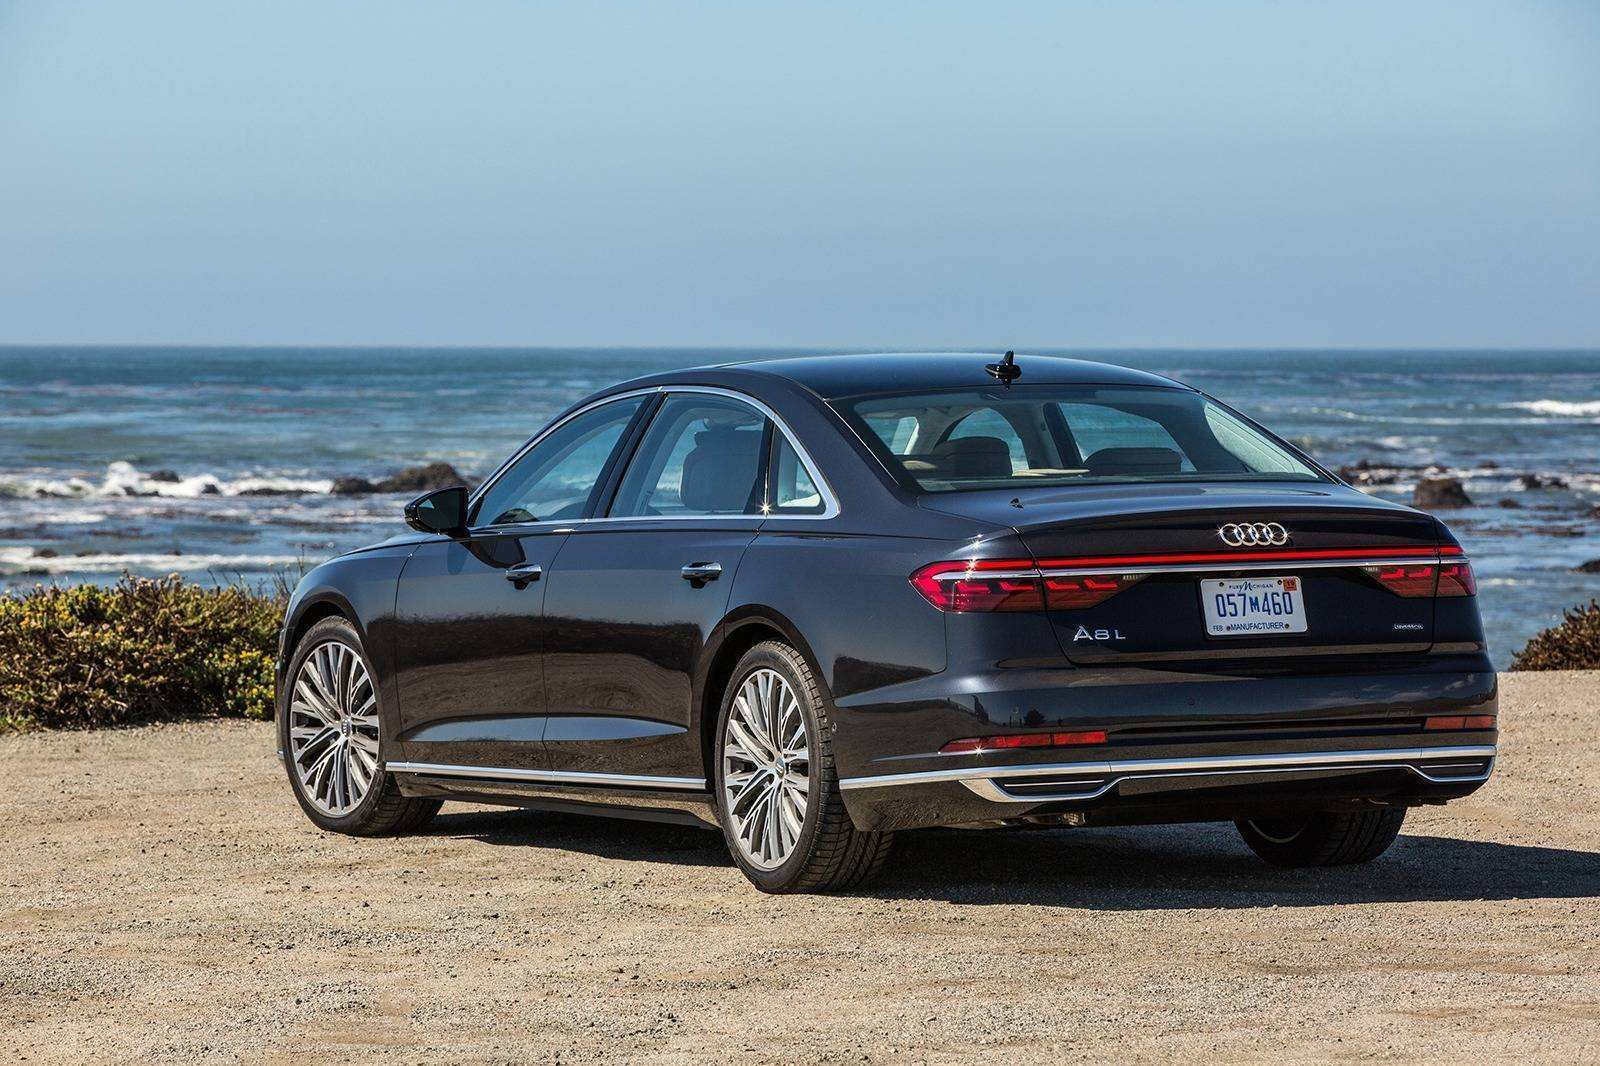 73 Great 2019 Audi A8 Debut Pictures by 2019 Audi A8 Debut